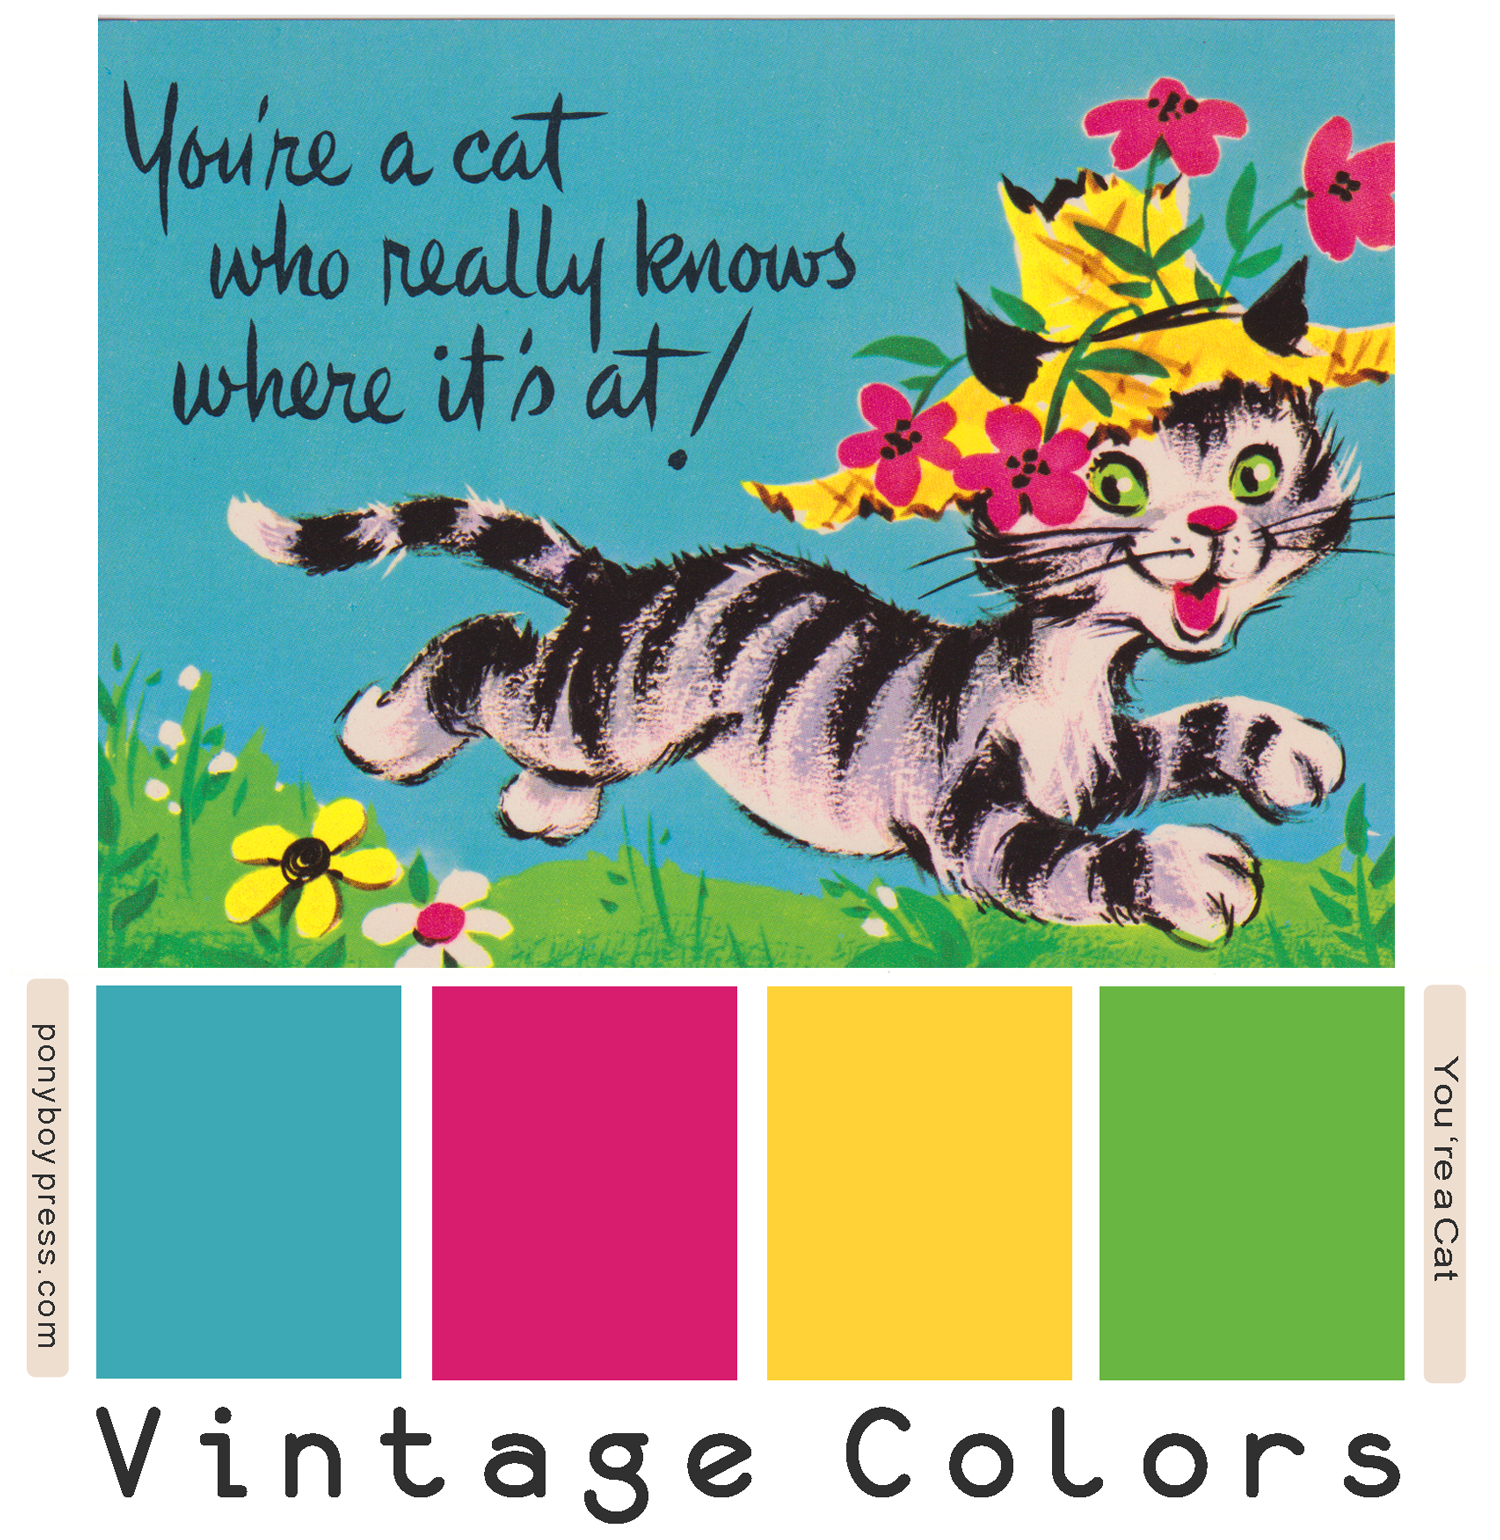 Vintage Color Palettes - Circa 1970 Cat postcard - Ponyboy Press blog